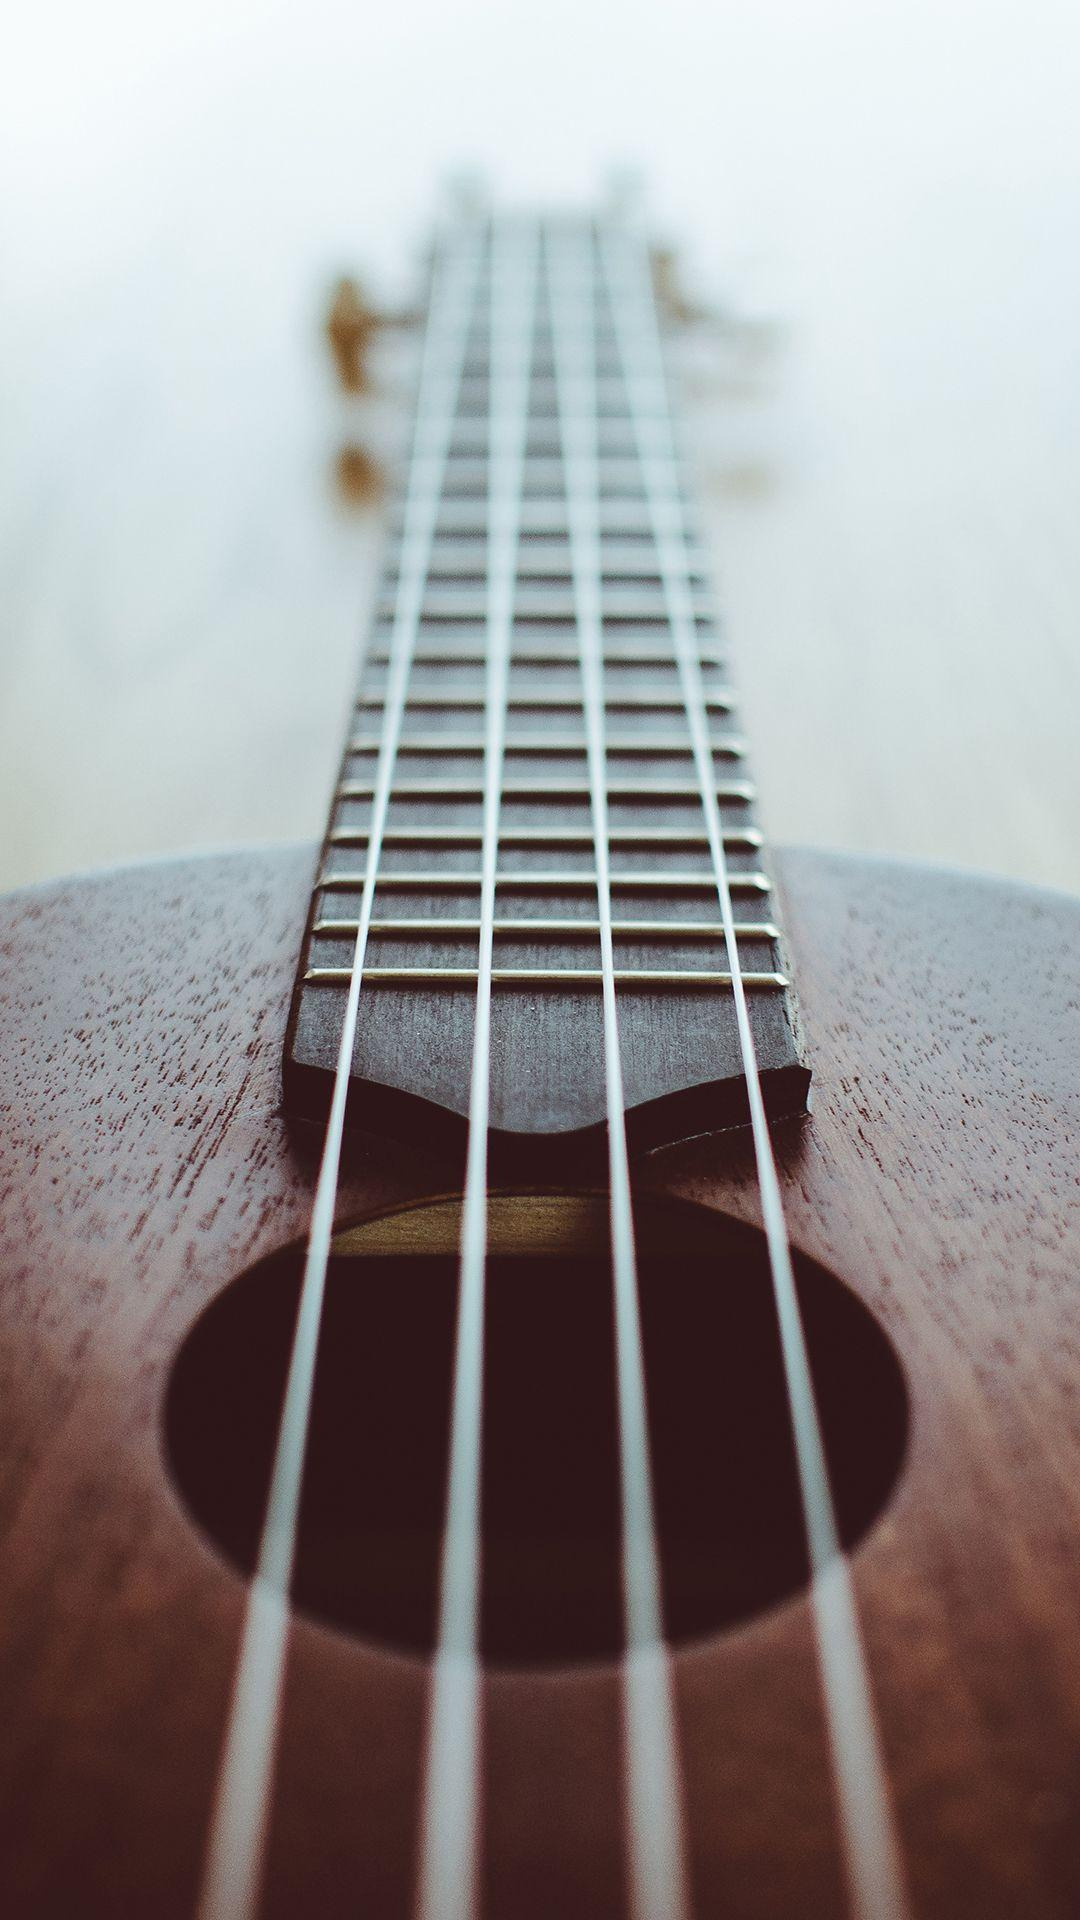 Cool Guitar Wallpapers For Mobile Wallpaper Cave